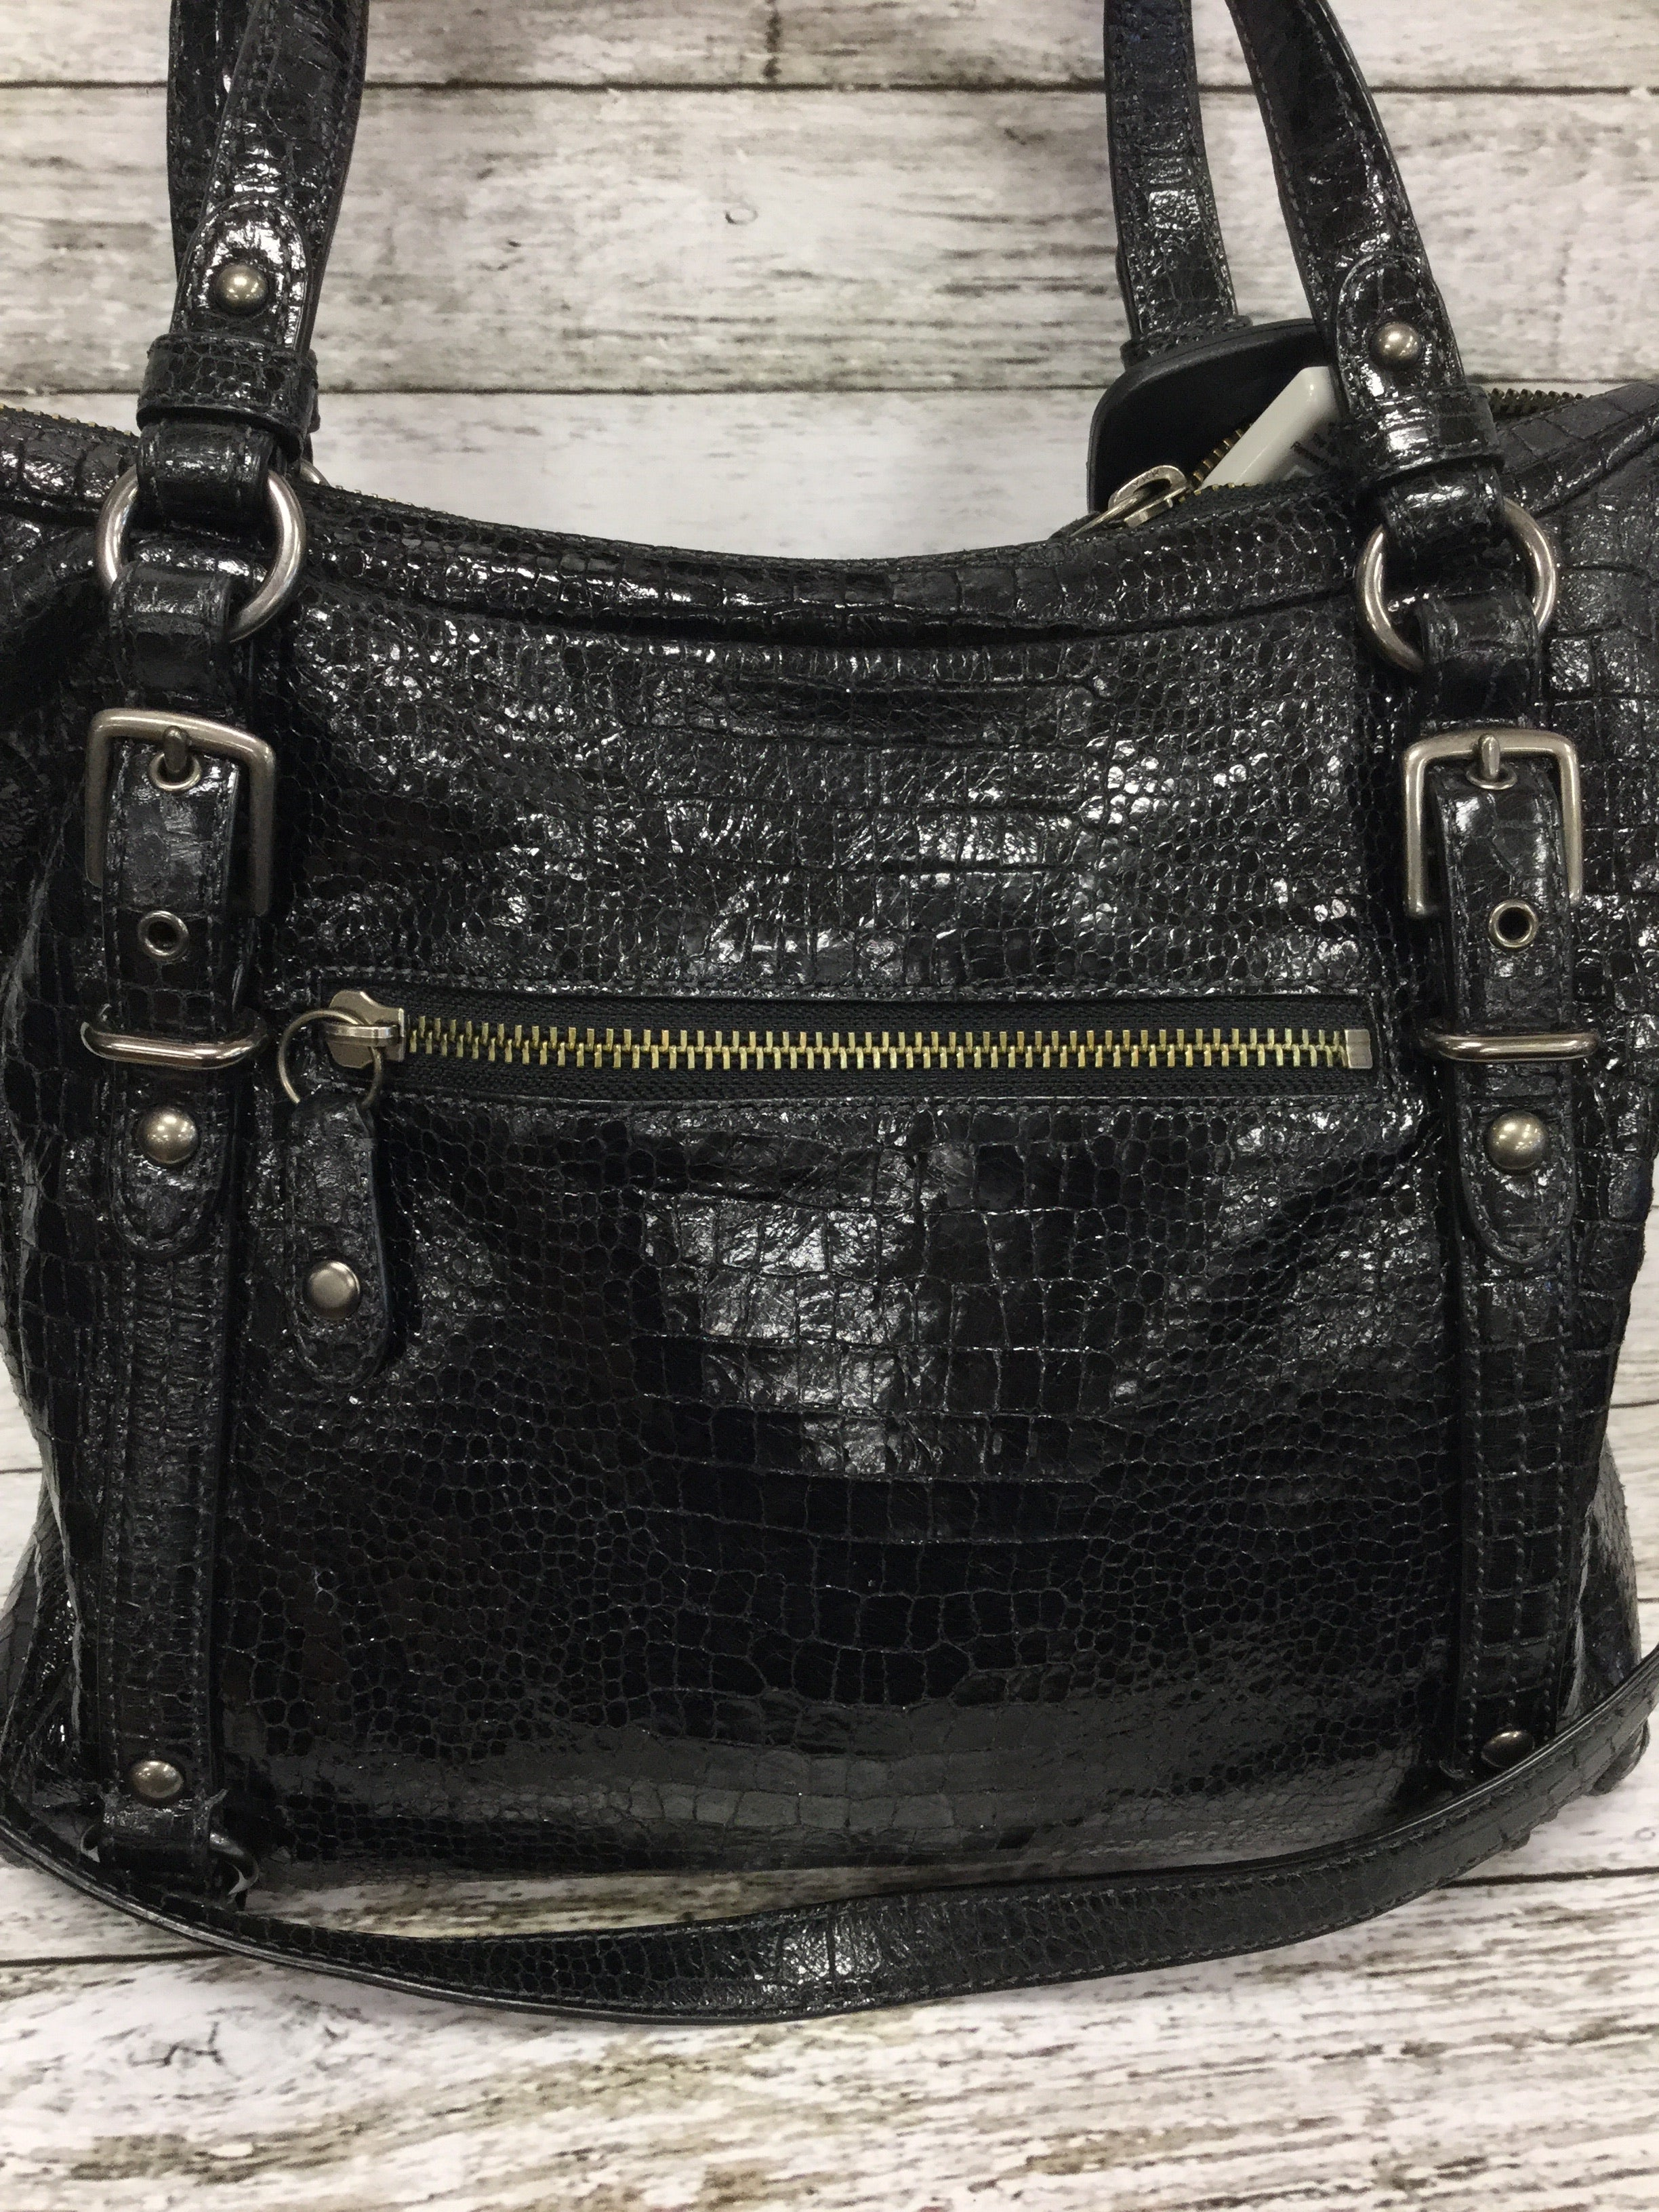 Photo #1 - BRAND: COACH , STYLE: HANDBAG , COLOR: BLACK , SIZE: LARGE , OTHER INFO: ALEXANDRA , SKU: 127-4942-3300, , THIS LEATHER COACH HANDBAG IS IN VERY GOOD CONDITION WITH SOME MINOR WEAR. THE INSIDE AND OUTSIDE ARE BOTH VERY CLEAN.